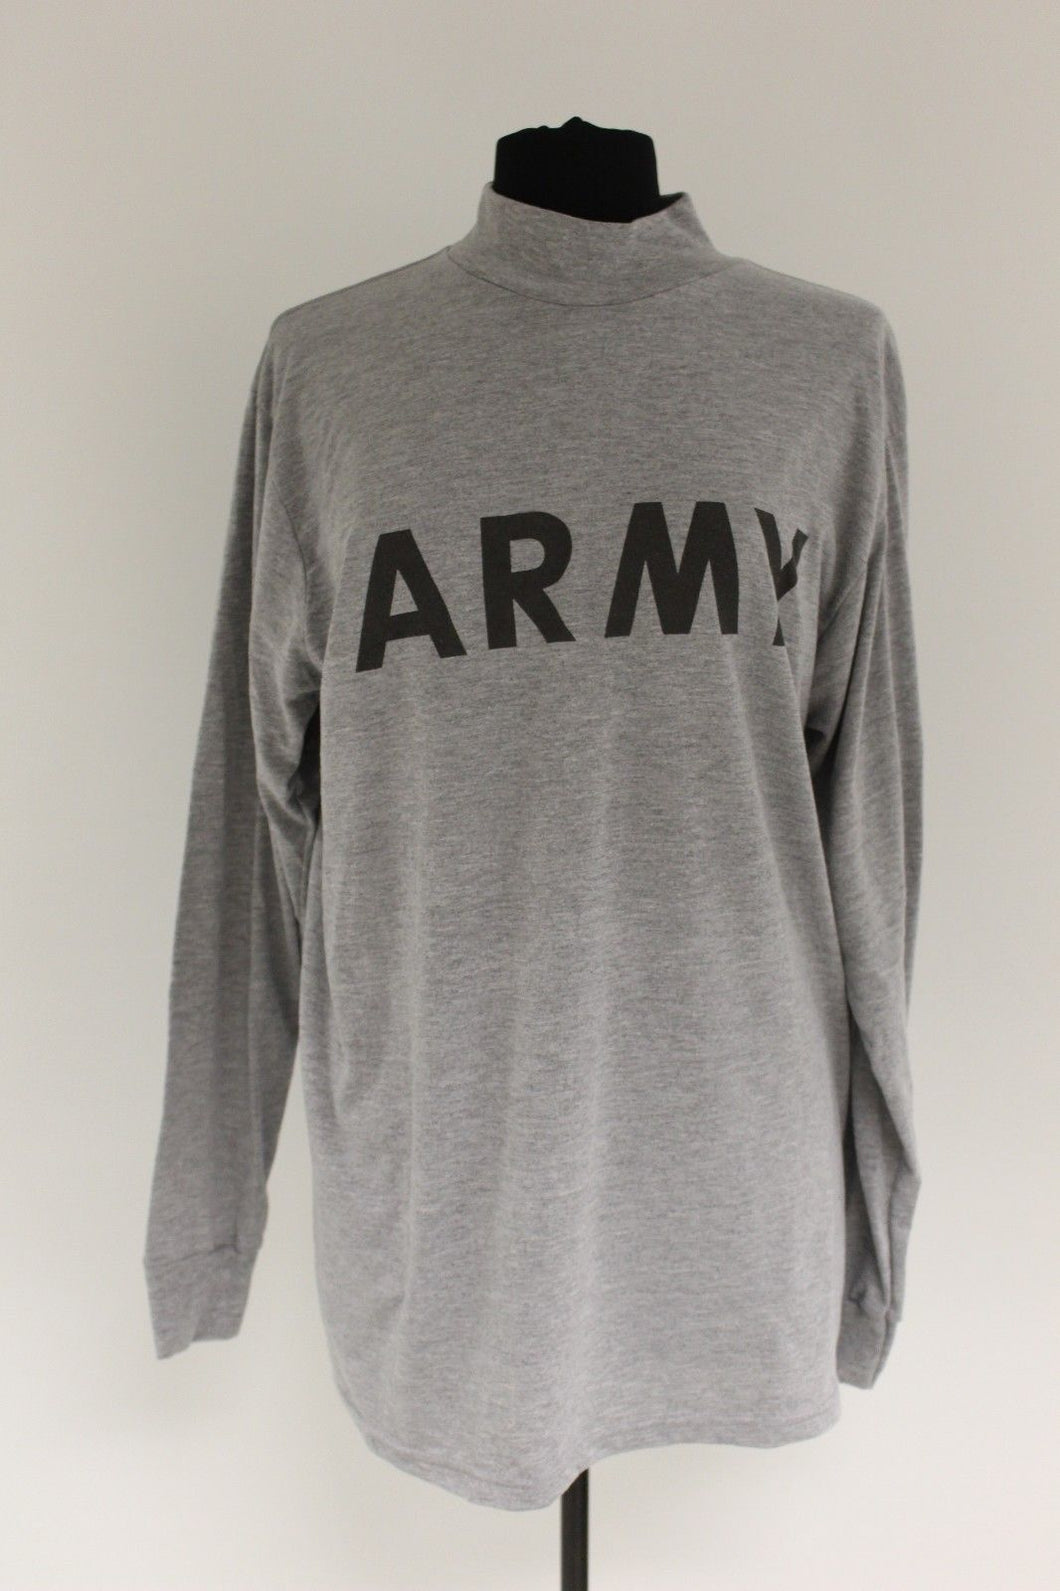 US Military Army Long Sleeve IFPU PT T-Shirt, 8415-01-465-7364, Large